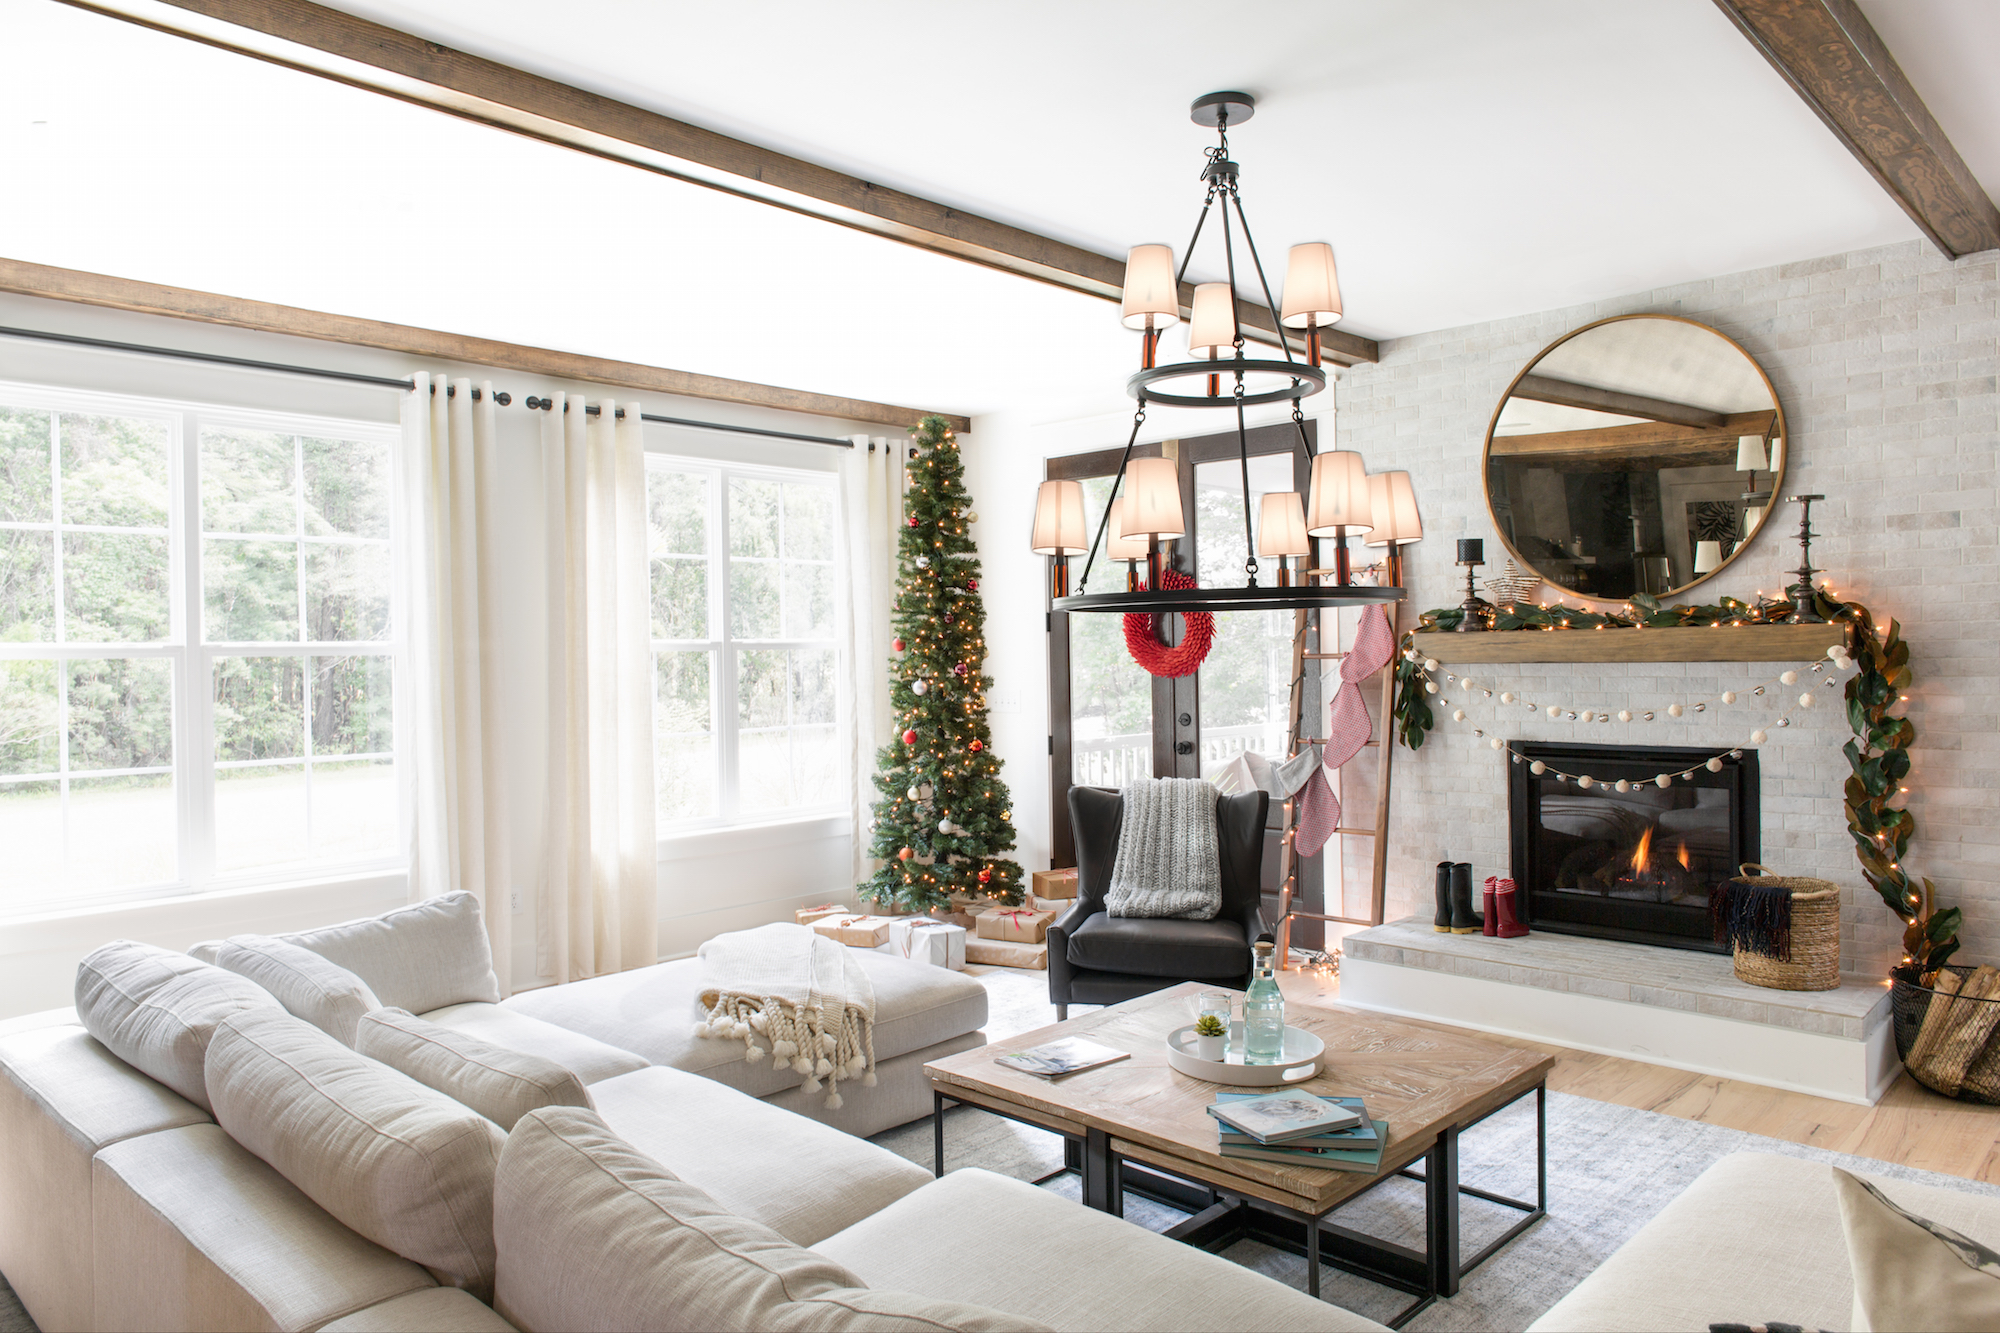 Top 5 Reasons To Buy a Crescent Home Over the Holidays